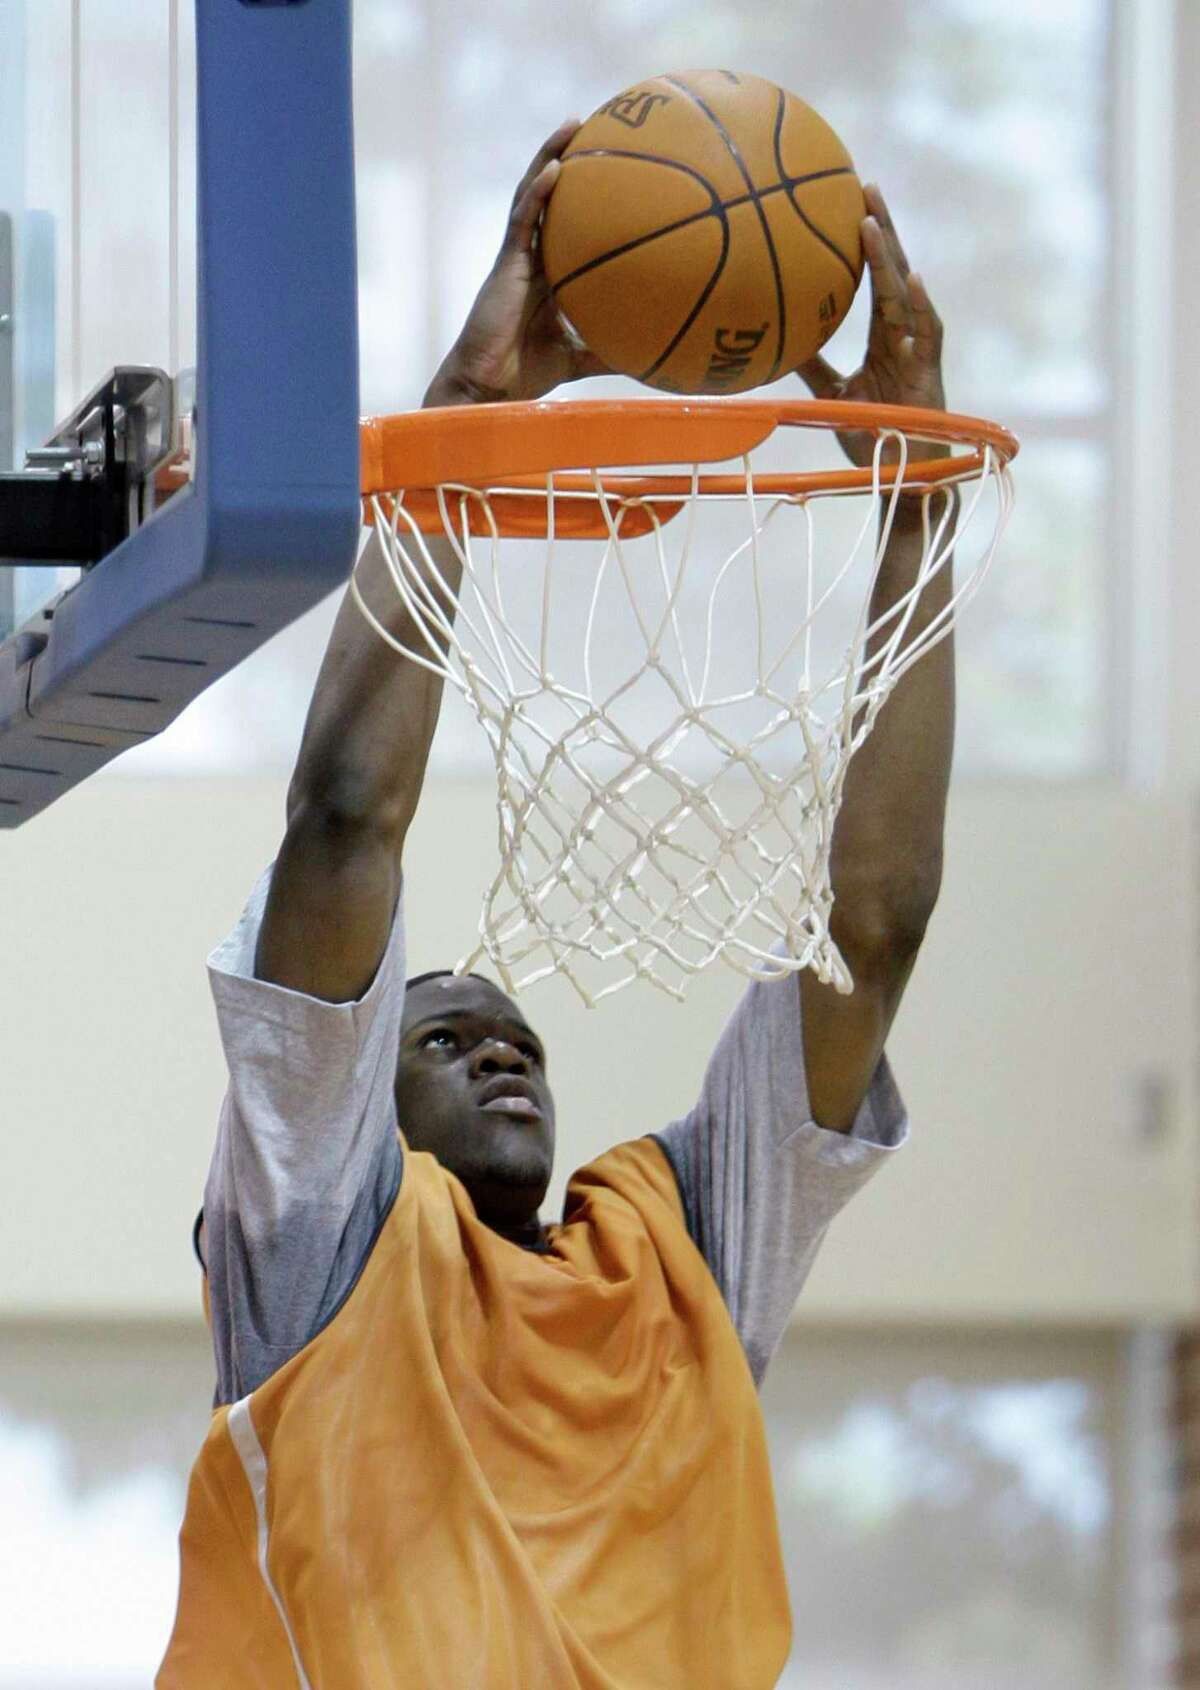 Latavious Williams dunks during a pre-NBA draft basketball workout for the Charlotte Bobcats in June 2010. He would be drafted by Miami, then traded to Oklahoma City.